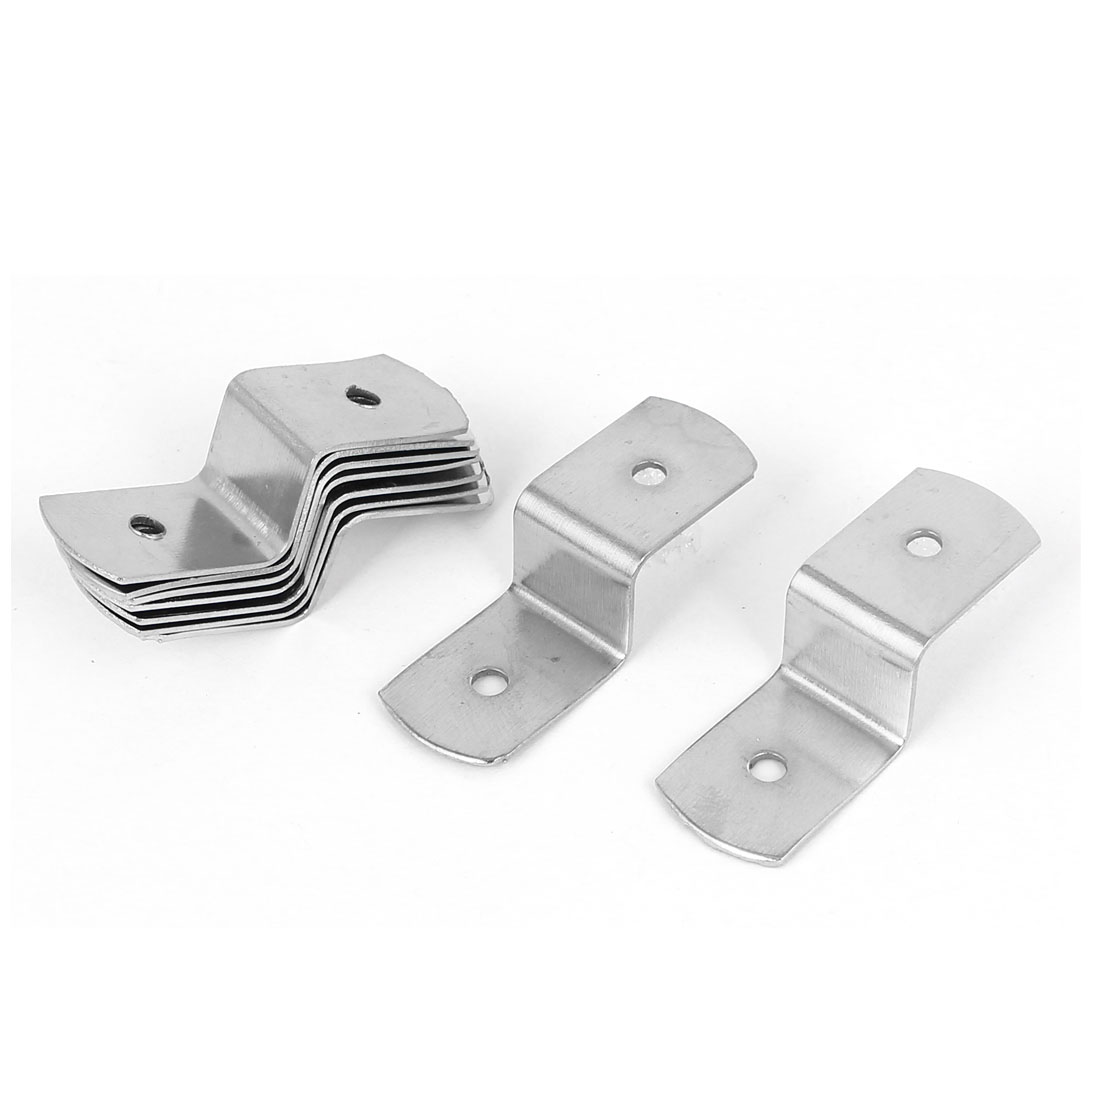 38mm x 13mm x 11mm Metal Z Shape Picture Frame Braces Brackets Silver Tone 10PCS